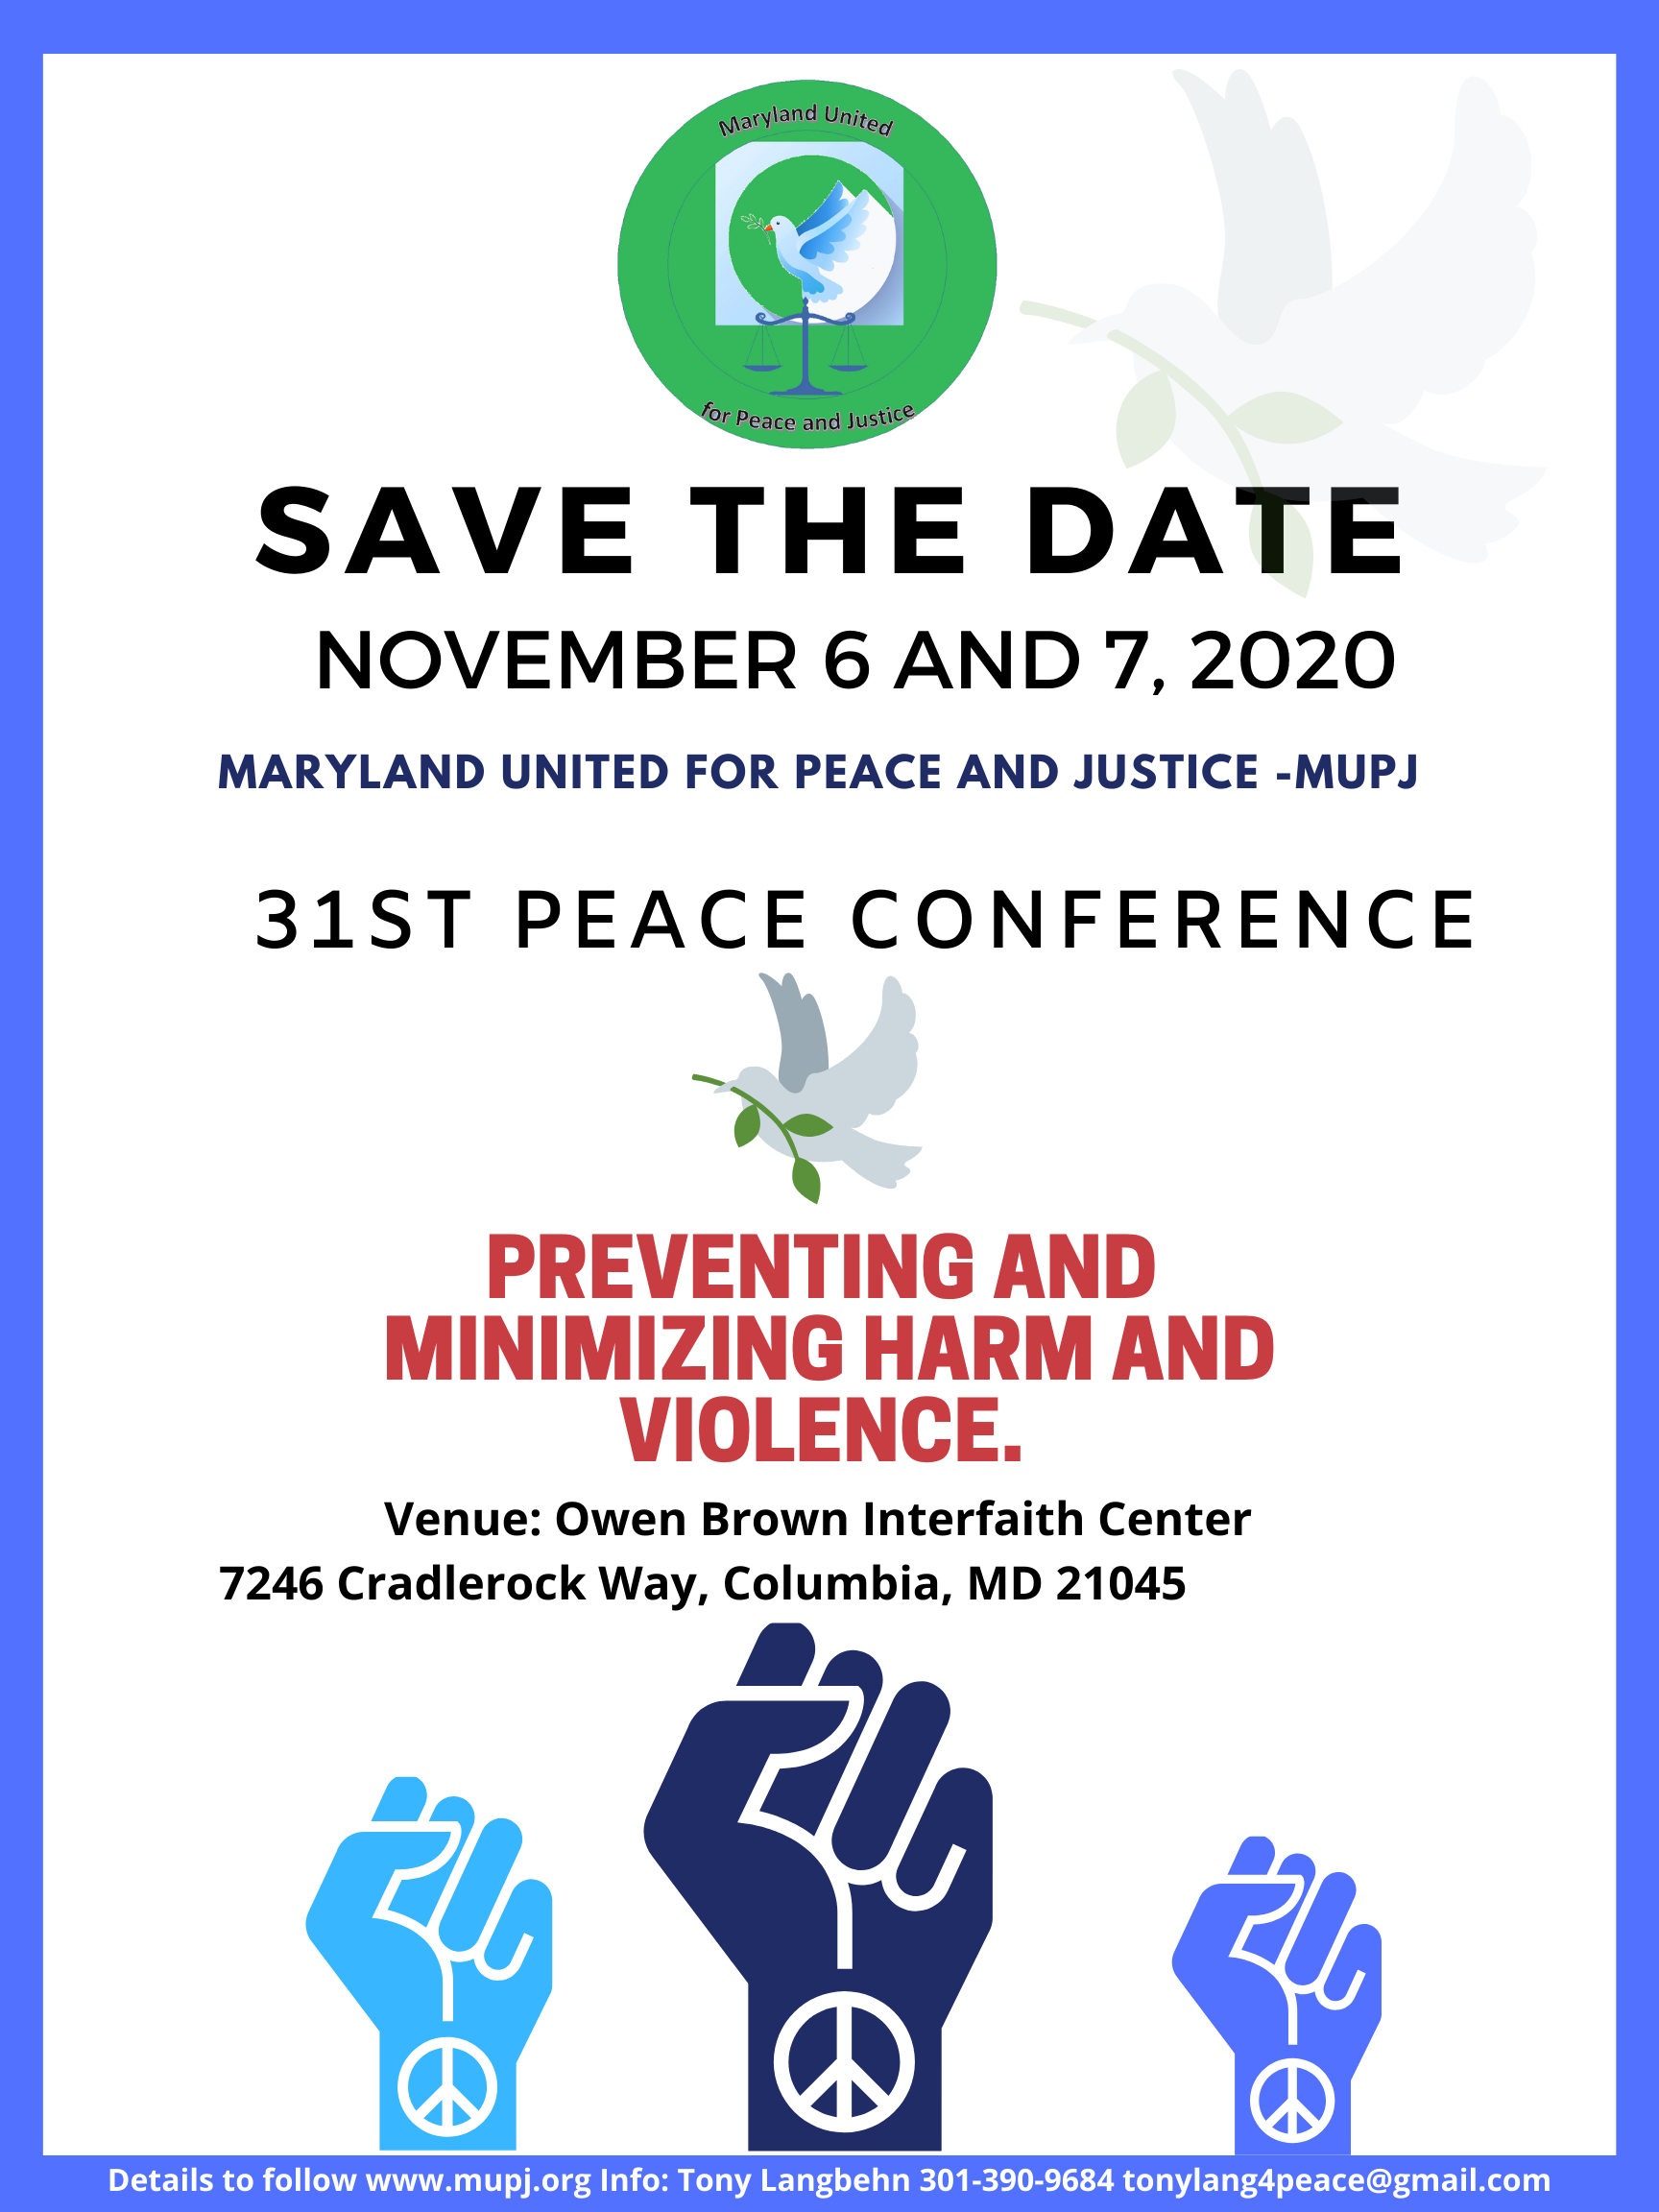 "SAVE THE DATE: Maryland United for Peace and Justice Presents  – 31st Annual Peace Conference – Theme: ""Preventing and Minimizing Harm and Violence"" Date: November 6 and 7, 2020"